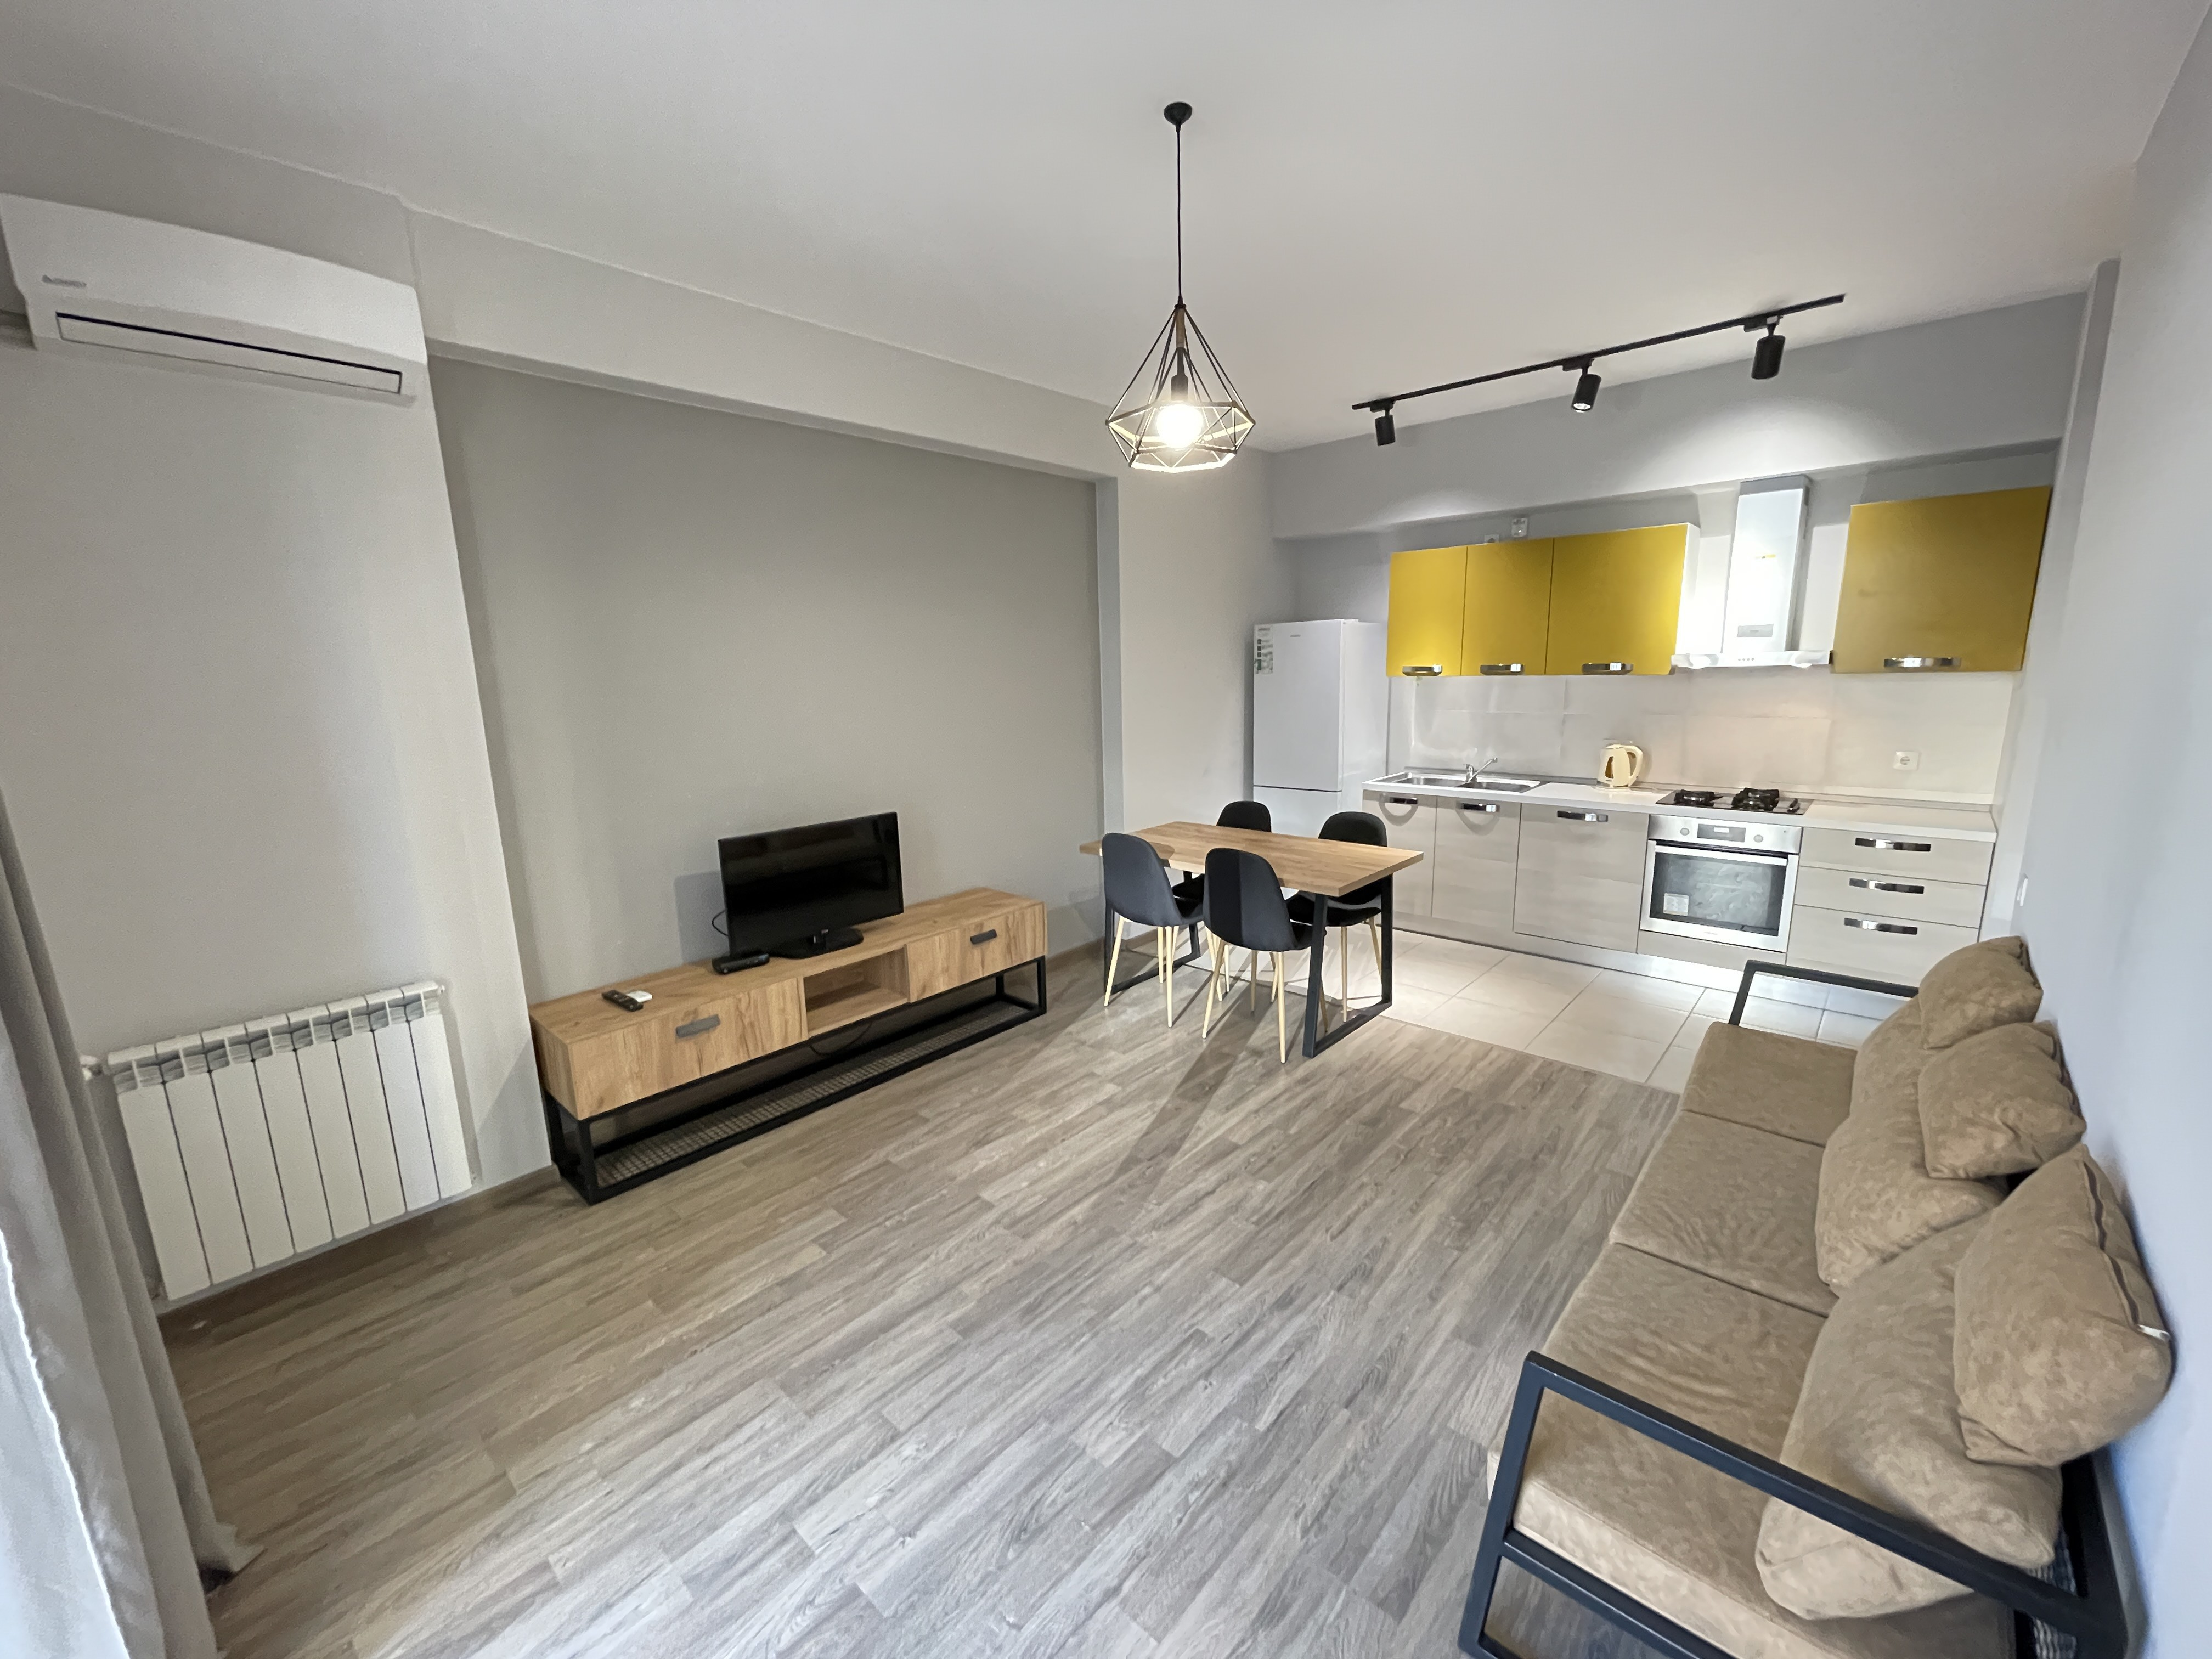 """2-Room Apartment For Rent at """"m2 on 10 Kartozia Street"""""""